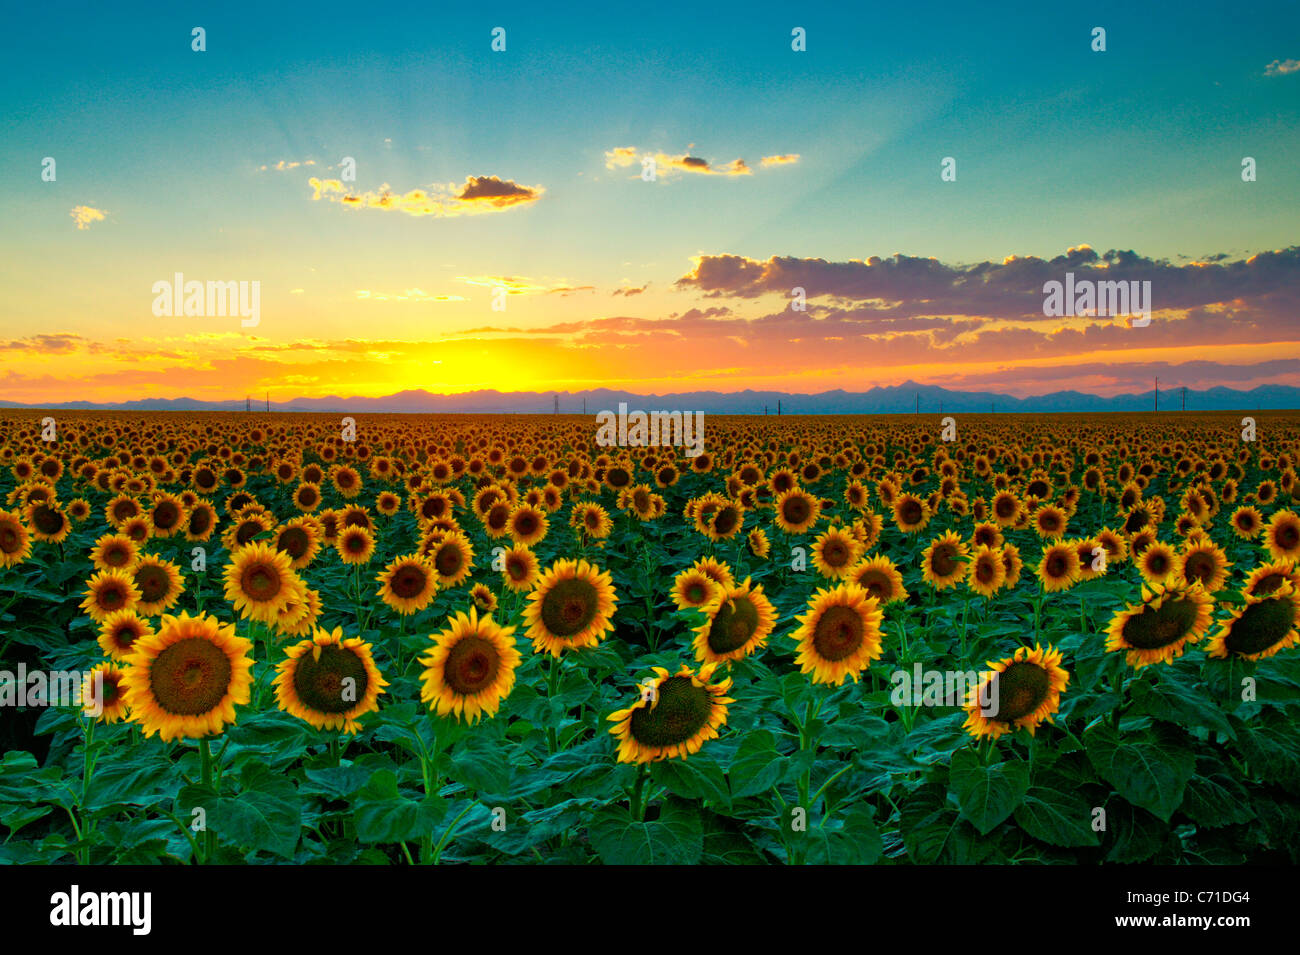 Sunflowers seem to go on forever as the sunset gives way to the days last light in Colorado - Stock Image